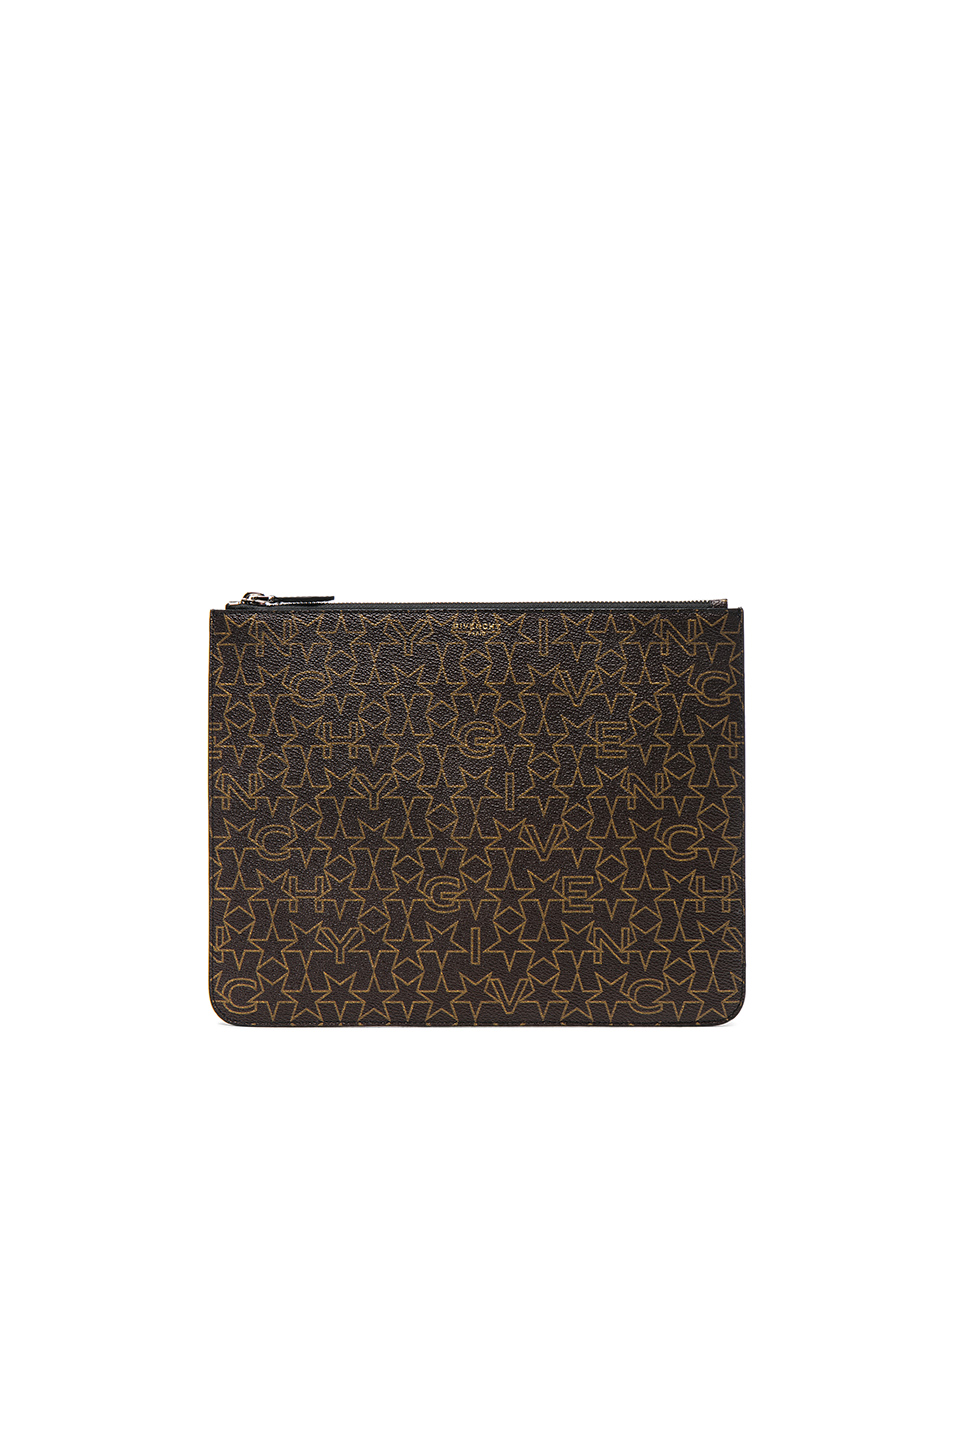 Givenchy Large Zip Pouch in Brown